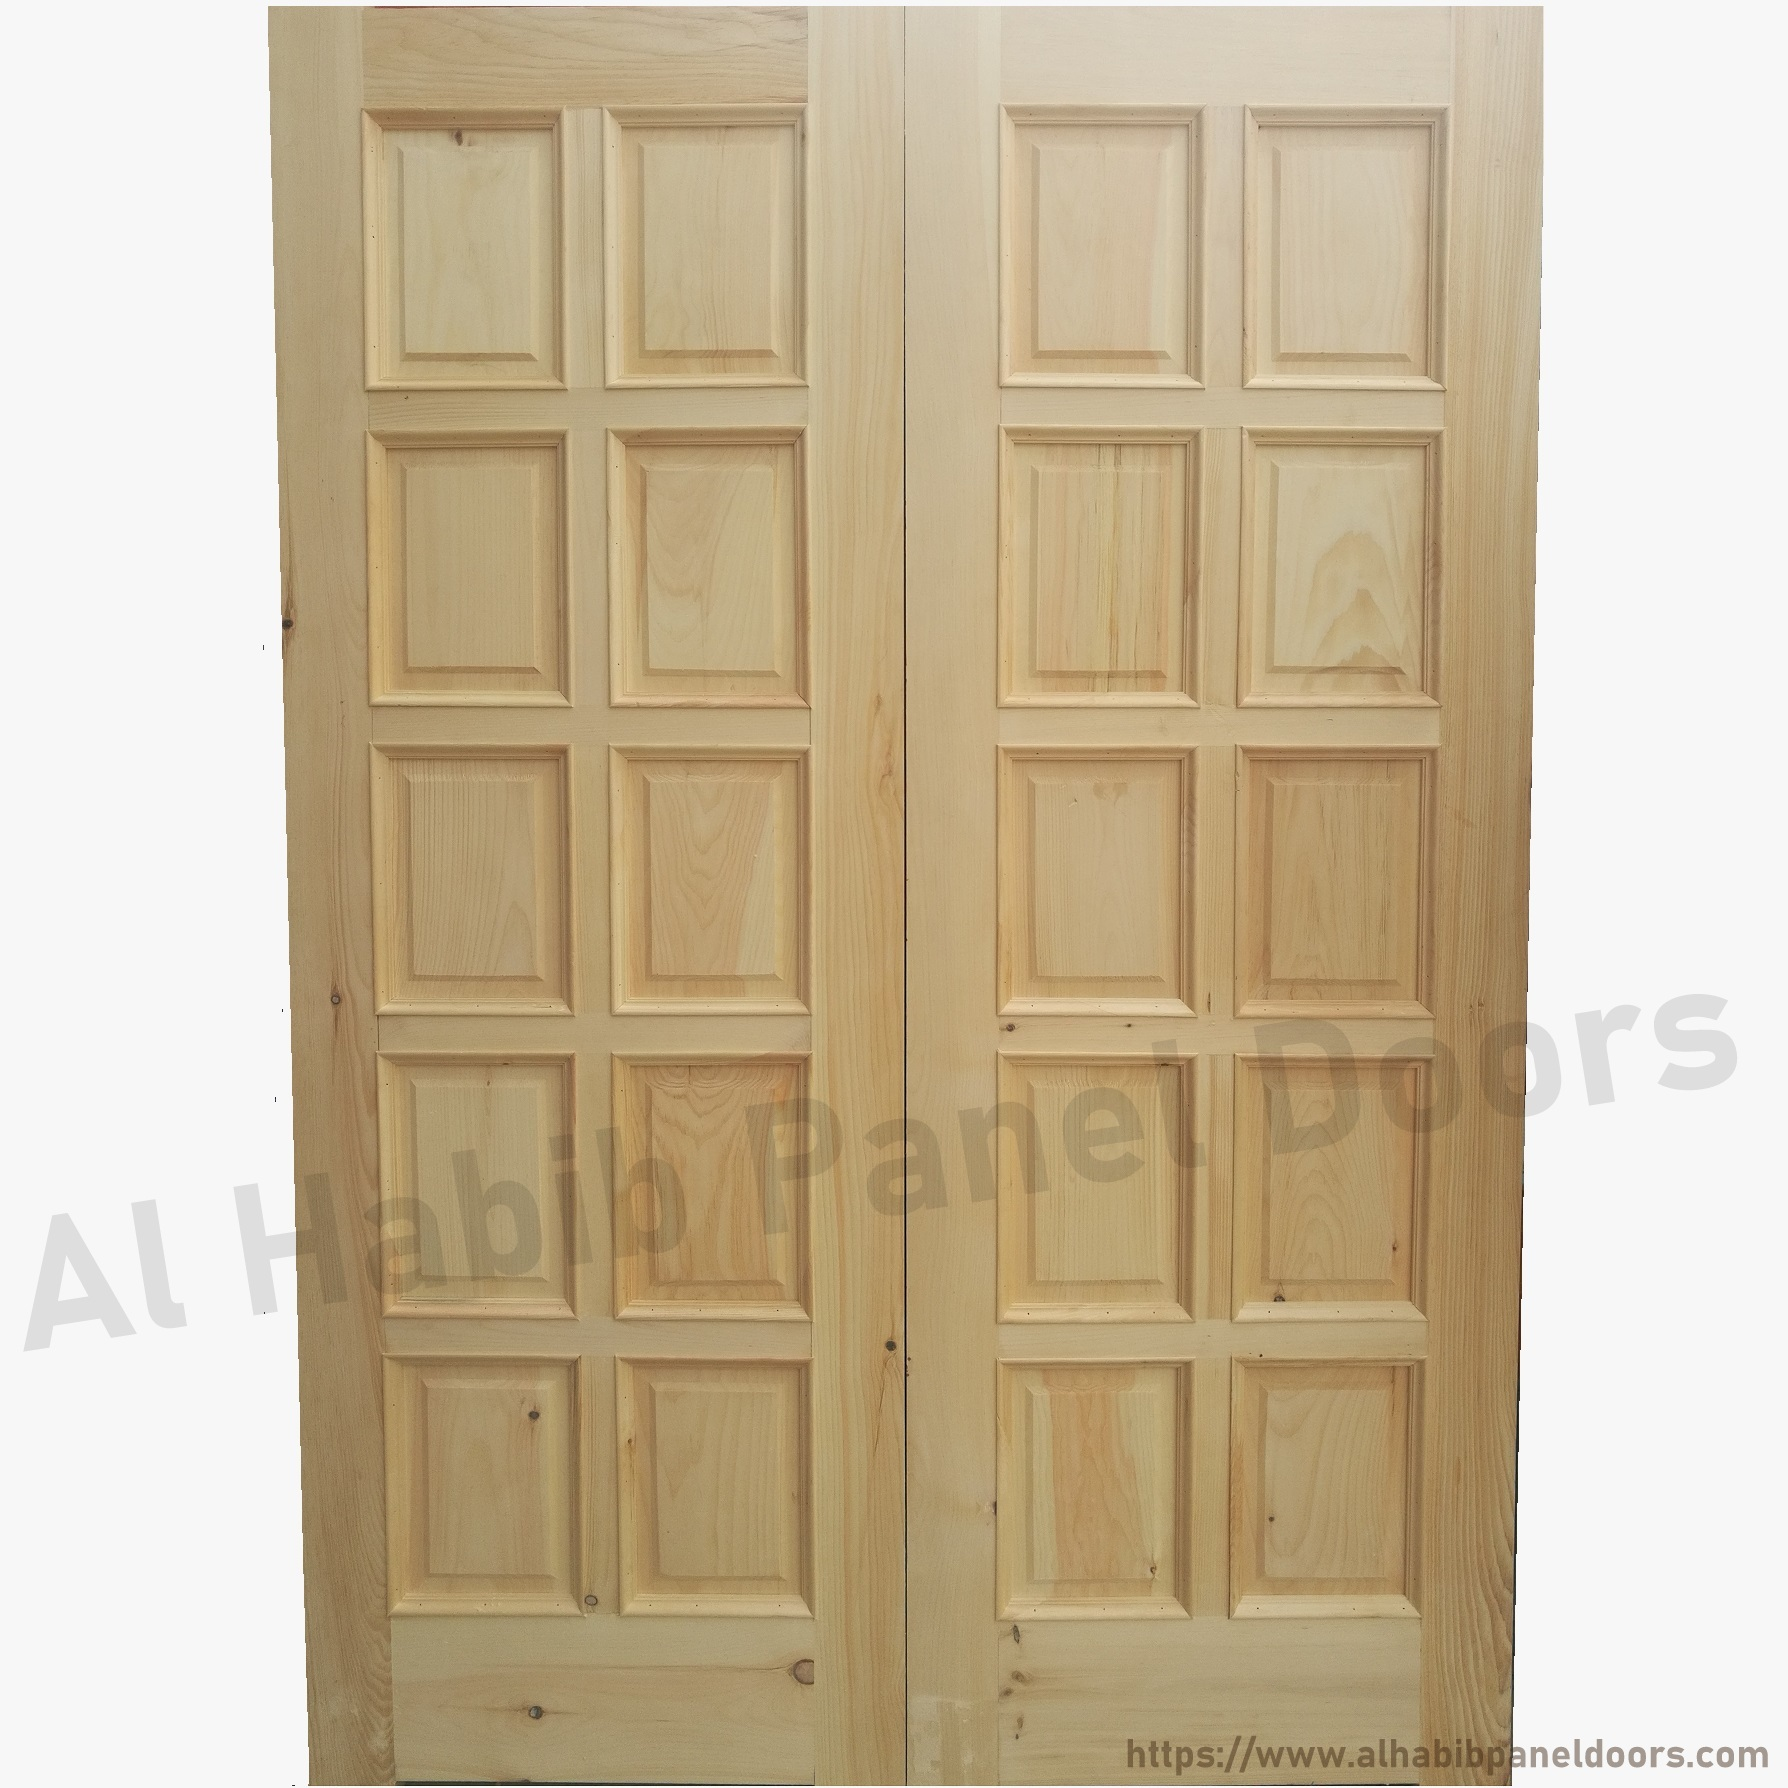 Latest wooden main double door designs home interior Main door wooden design